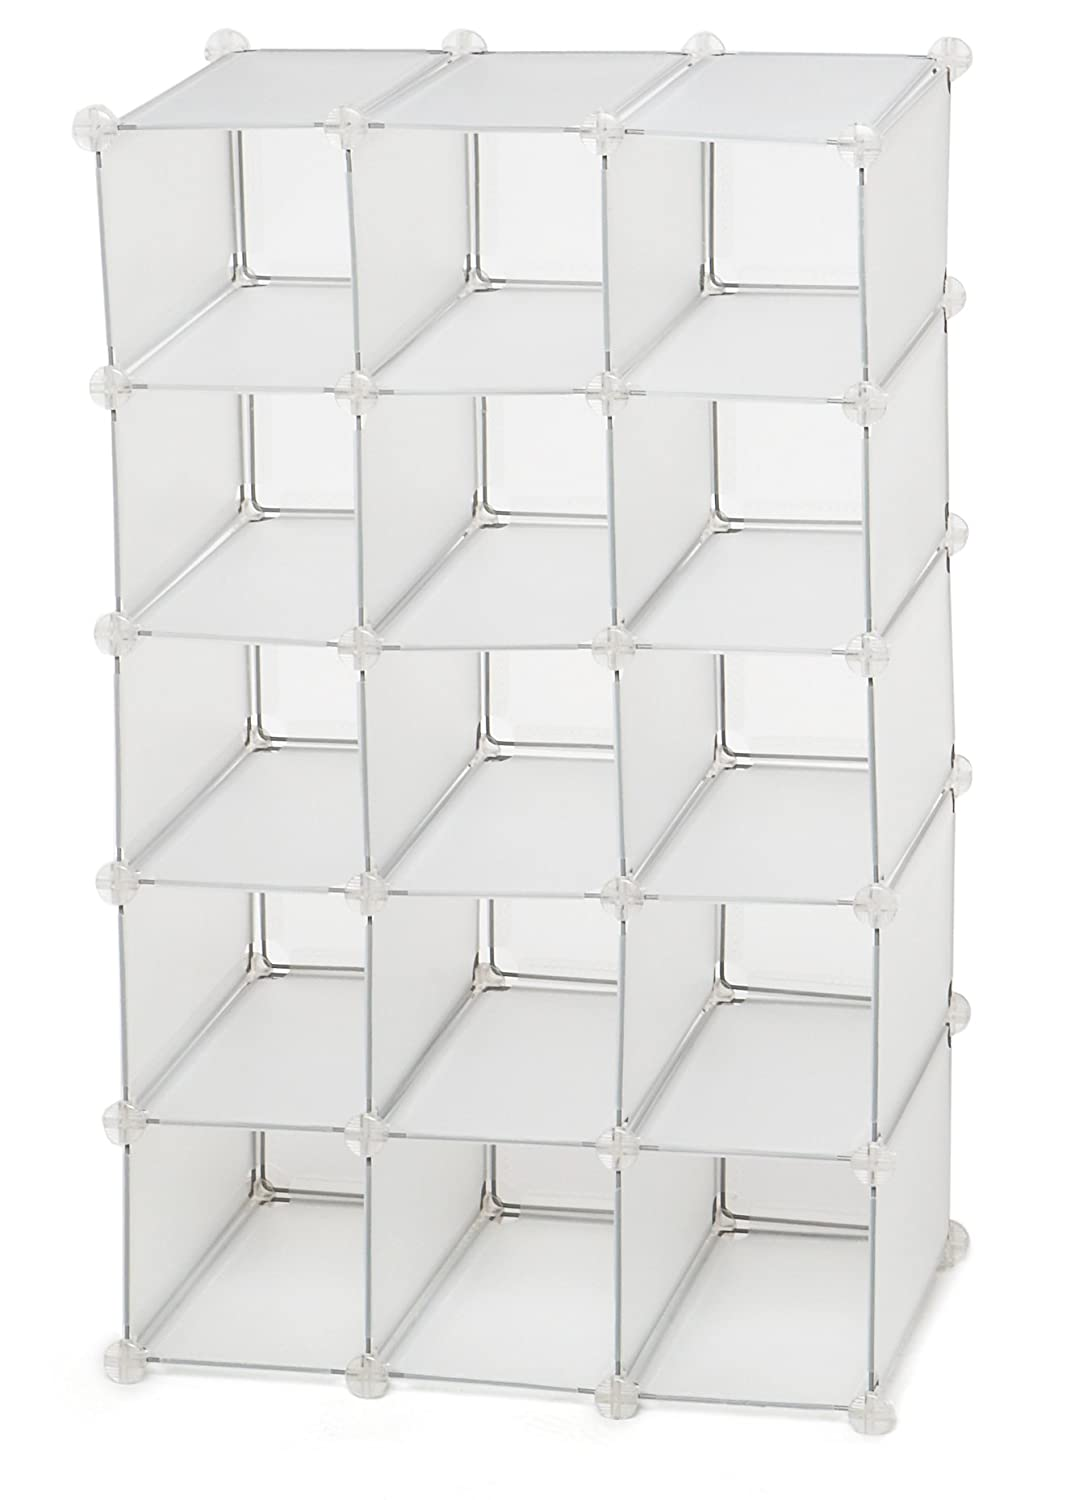 Amazon.com: Storage Solutions 15 Pair Shoe Cubby, White Frost: Home U0026  Kitchen